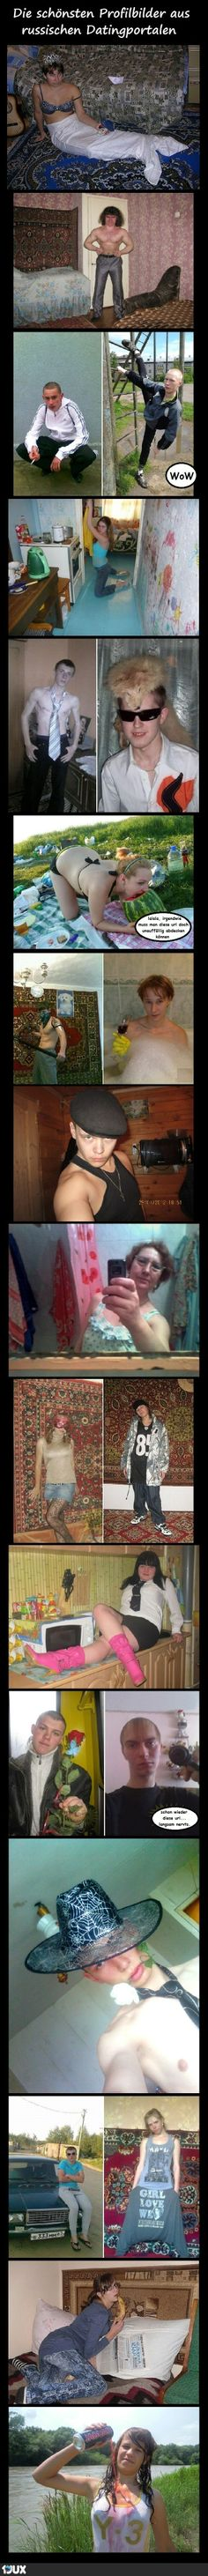 Pictures from a russian dating side